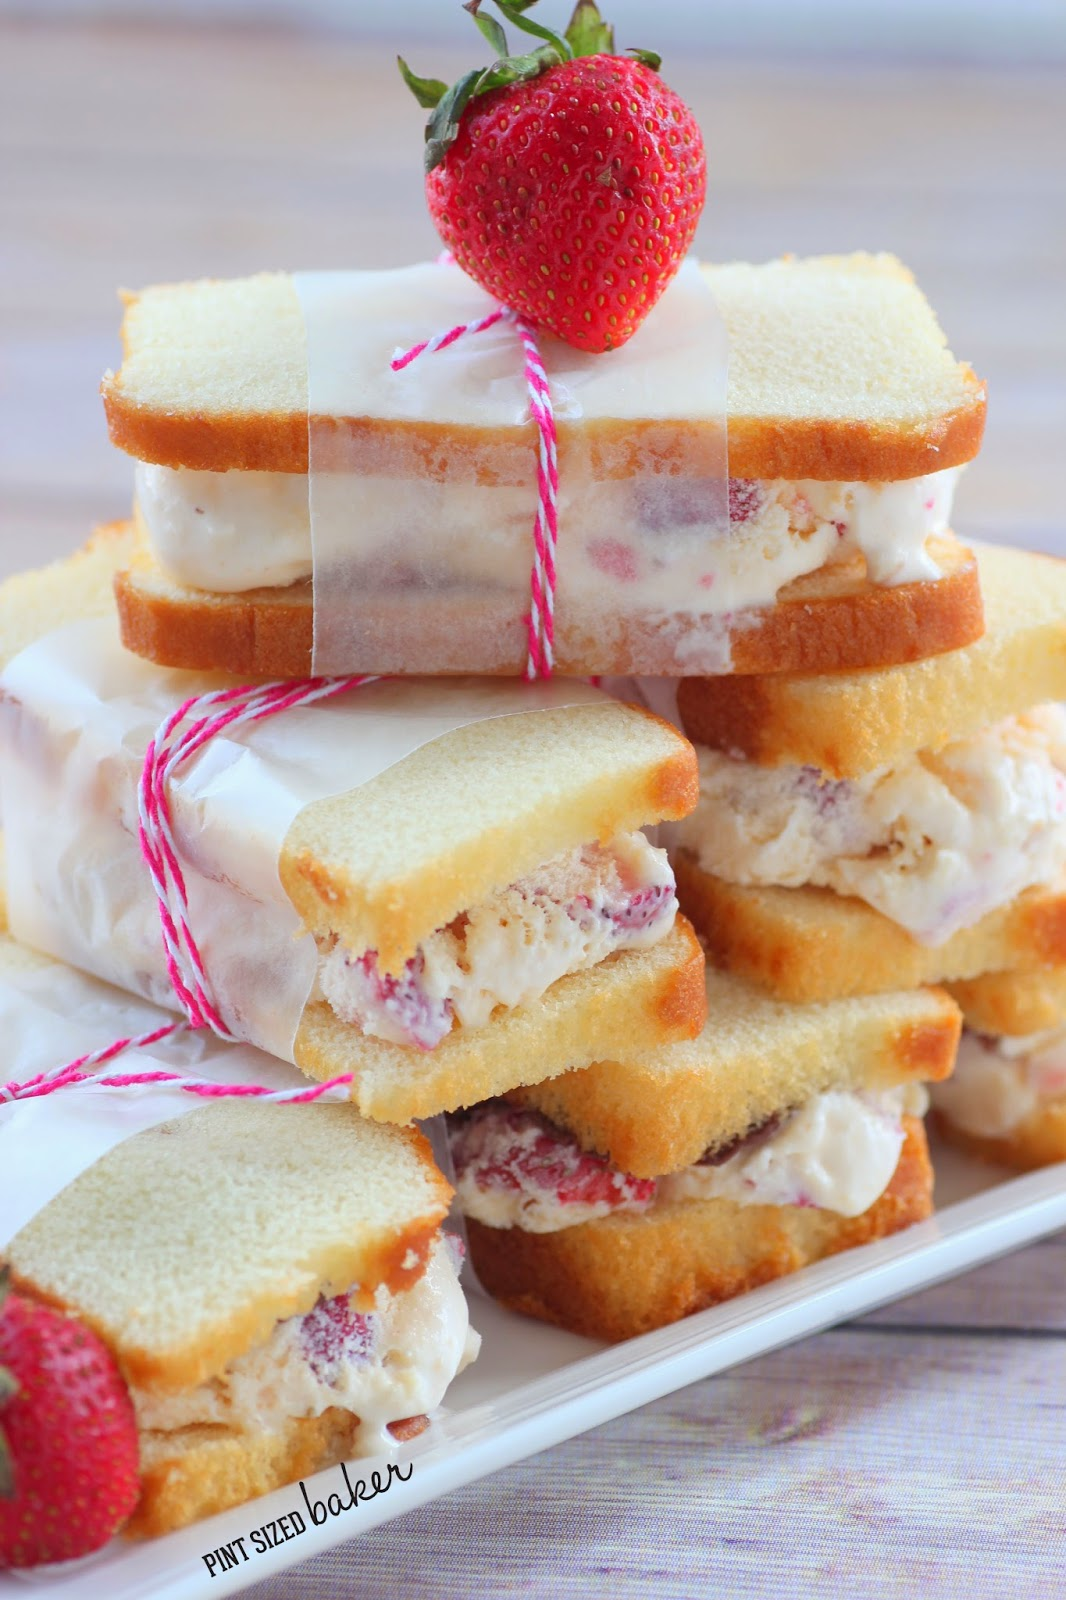 Strawberry Shortcake Ice Cream Sandwiches Pint Sized Baker